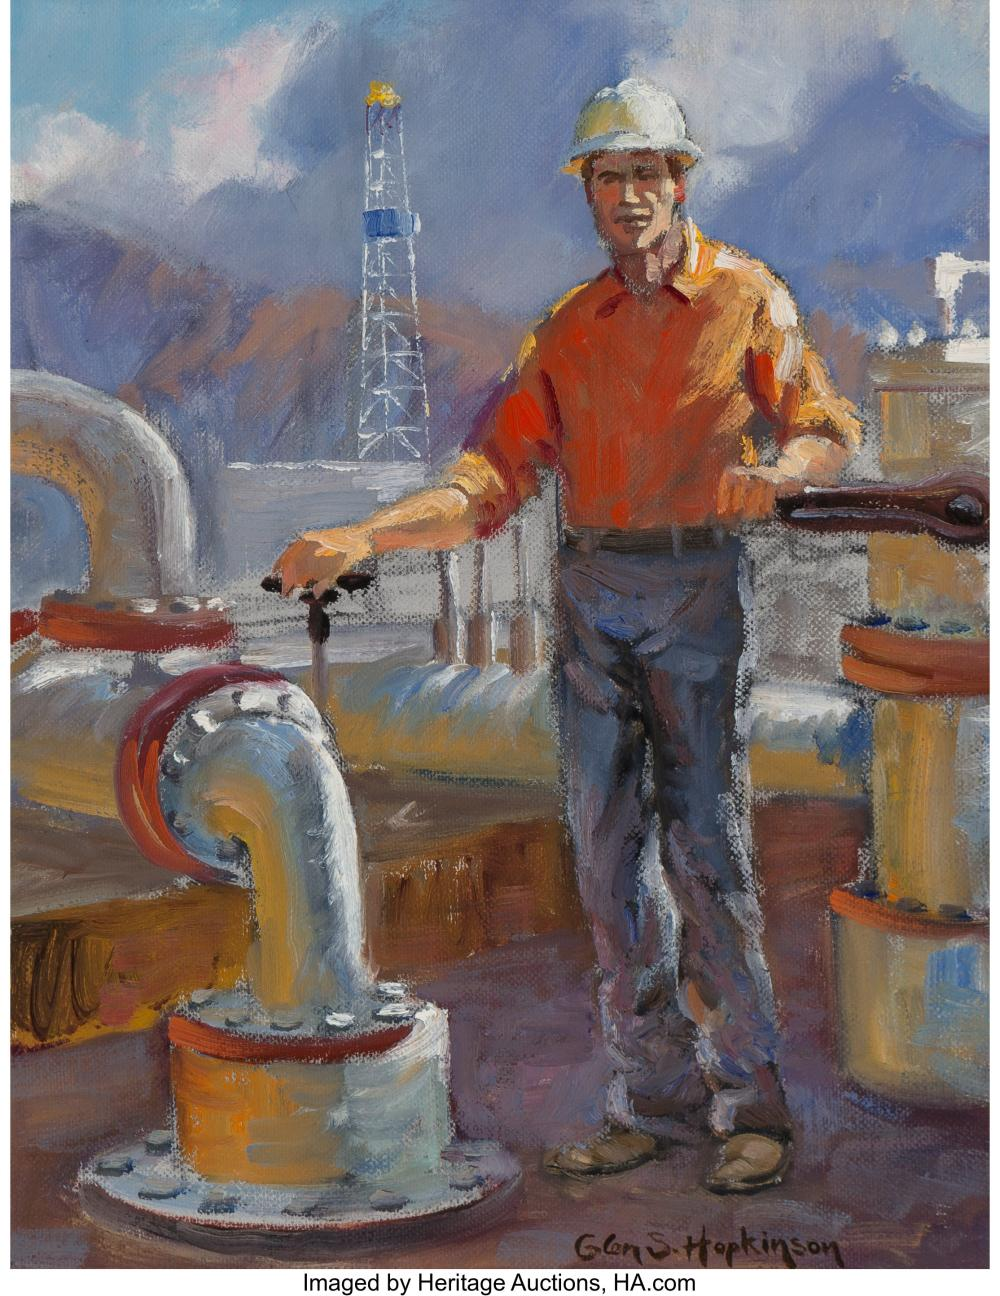 Glen Spencer Hopkinson (American, b. 1946) Modern Driller Oil on canvas 13 x 10